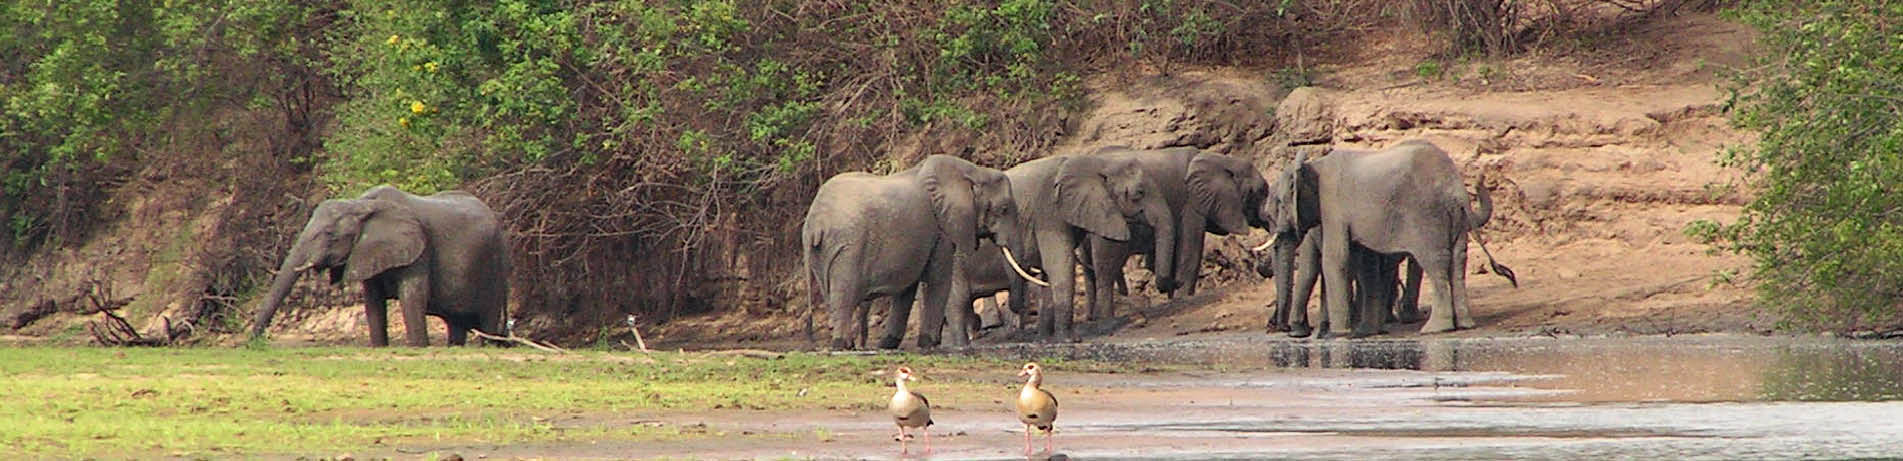 Elephants in the Selous Game Reserve, Tanzania